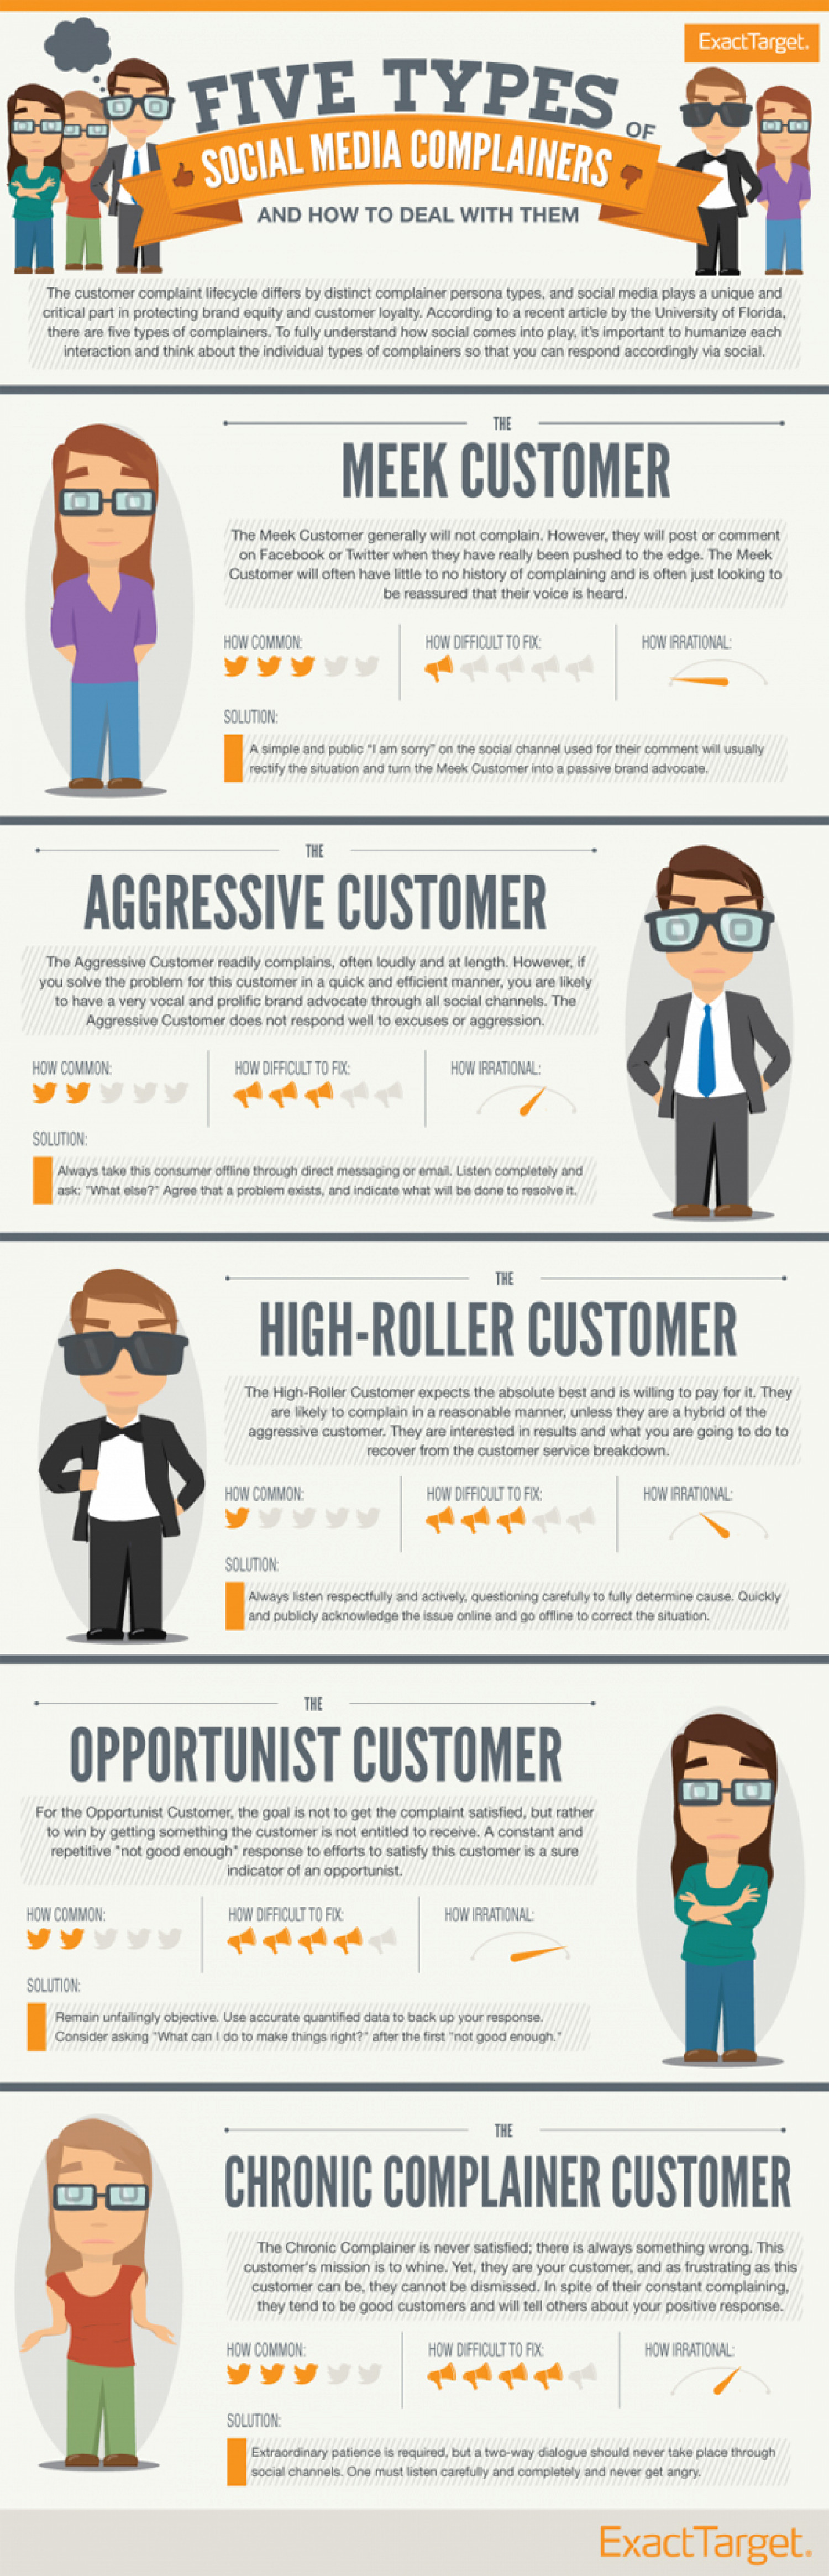 How to Deal with Social Media Complainers Infographic